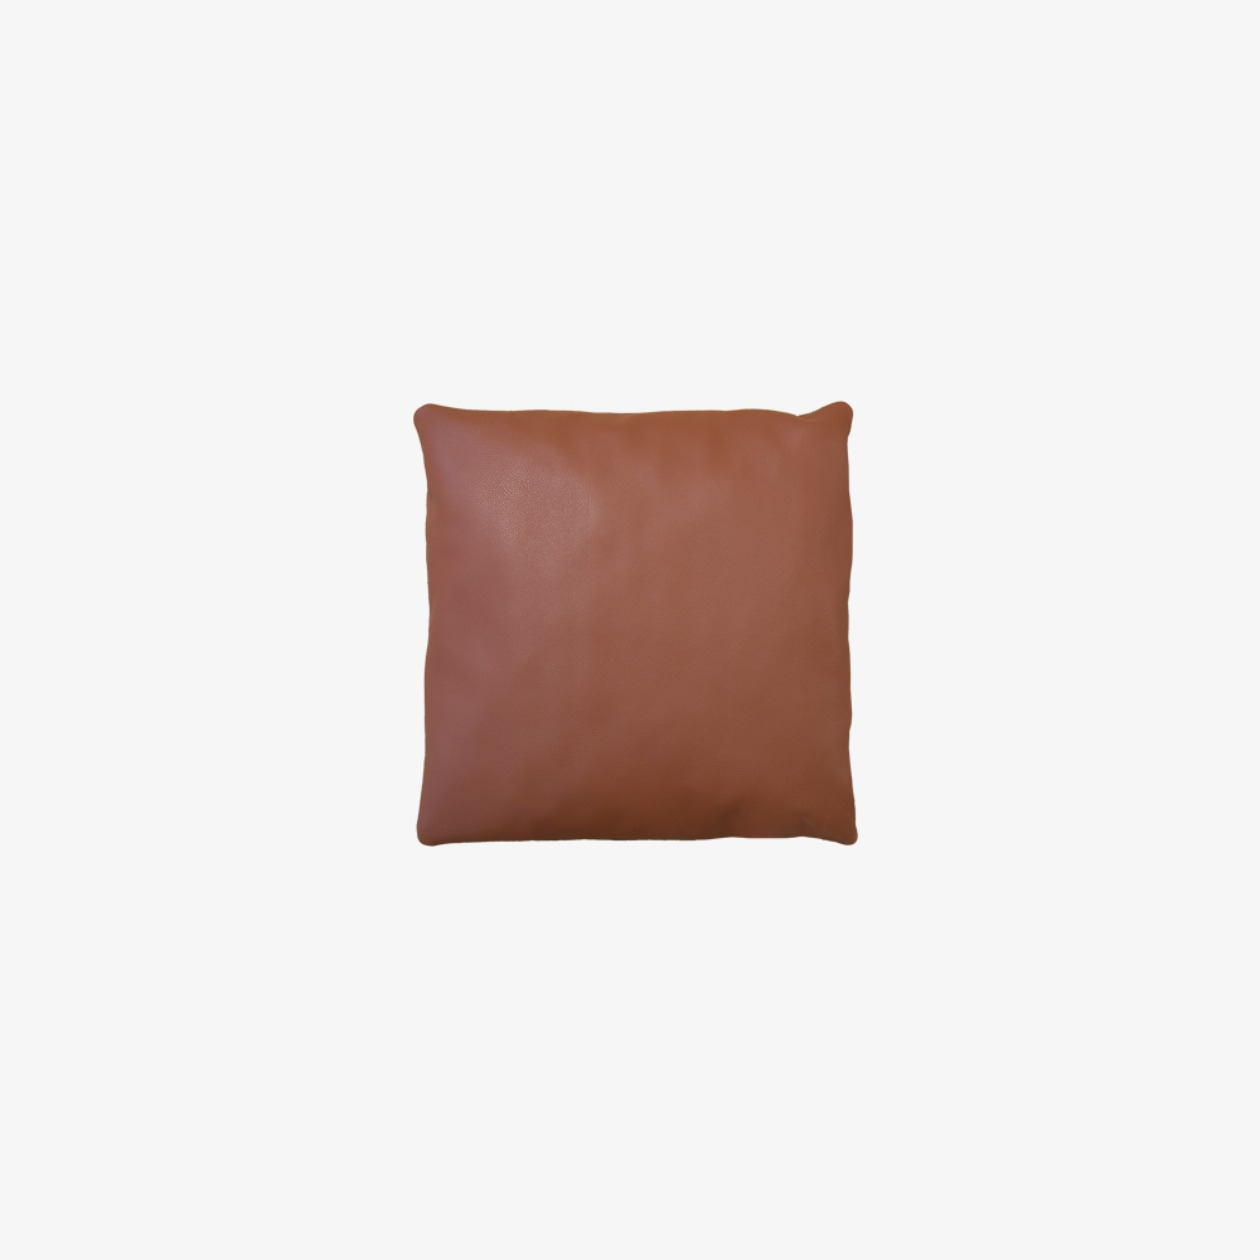 LAZY CUSHION / LEATHER